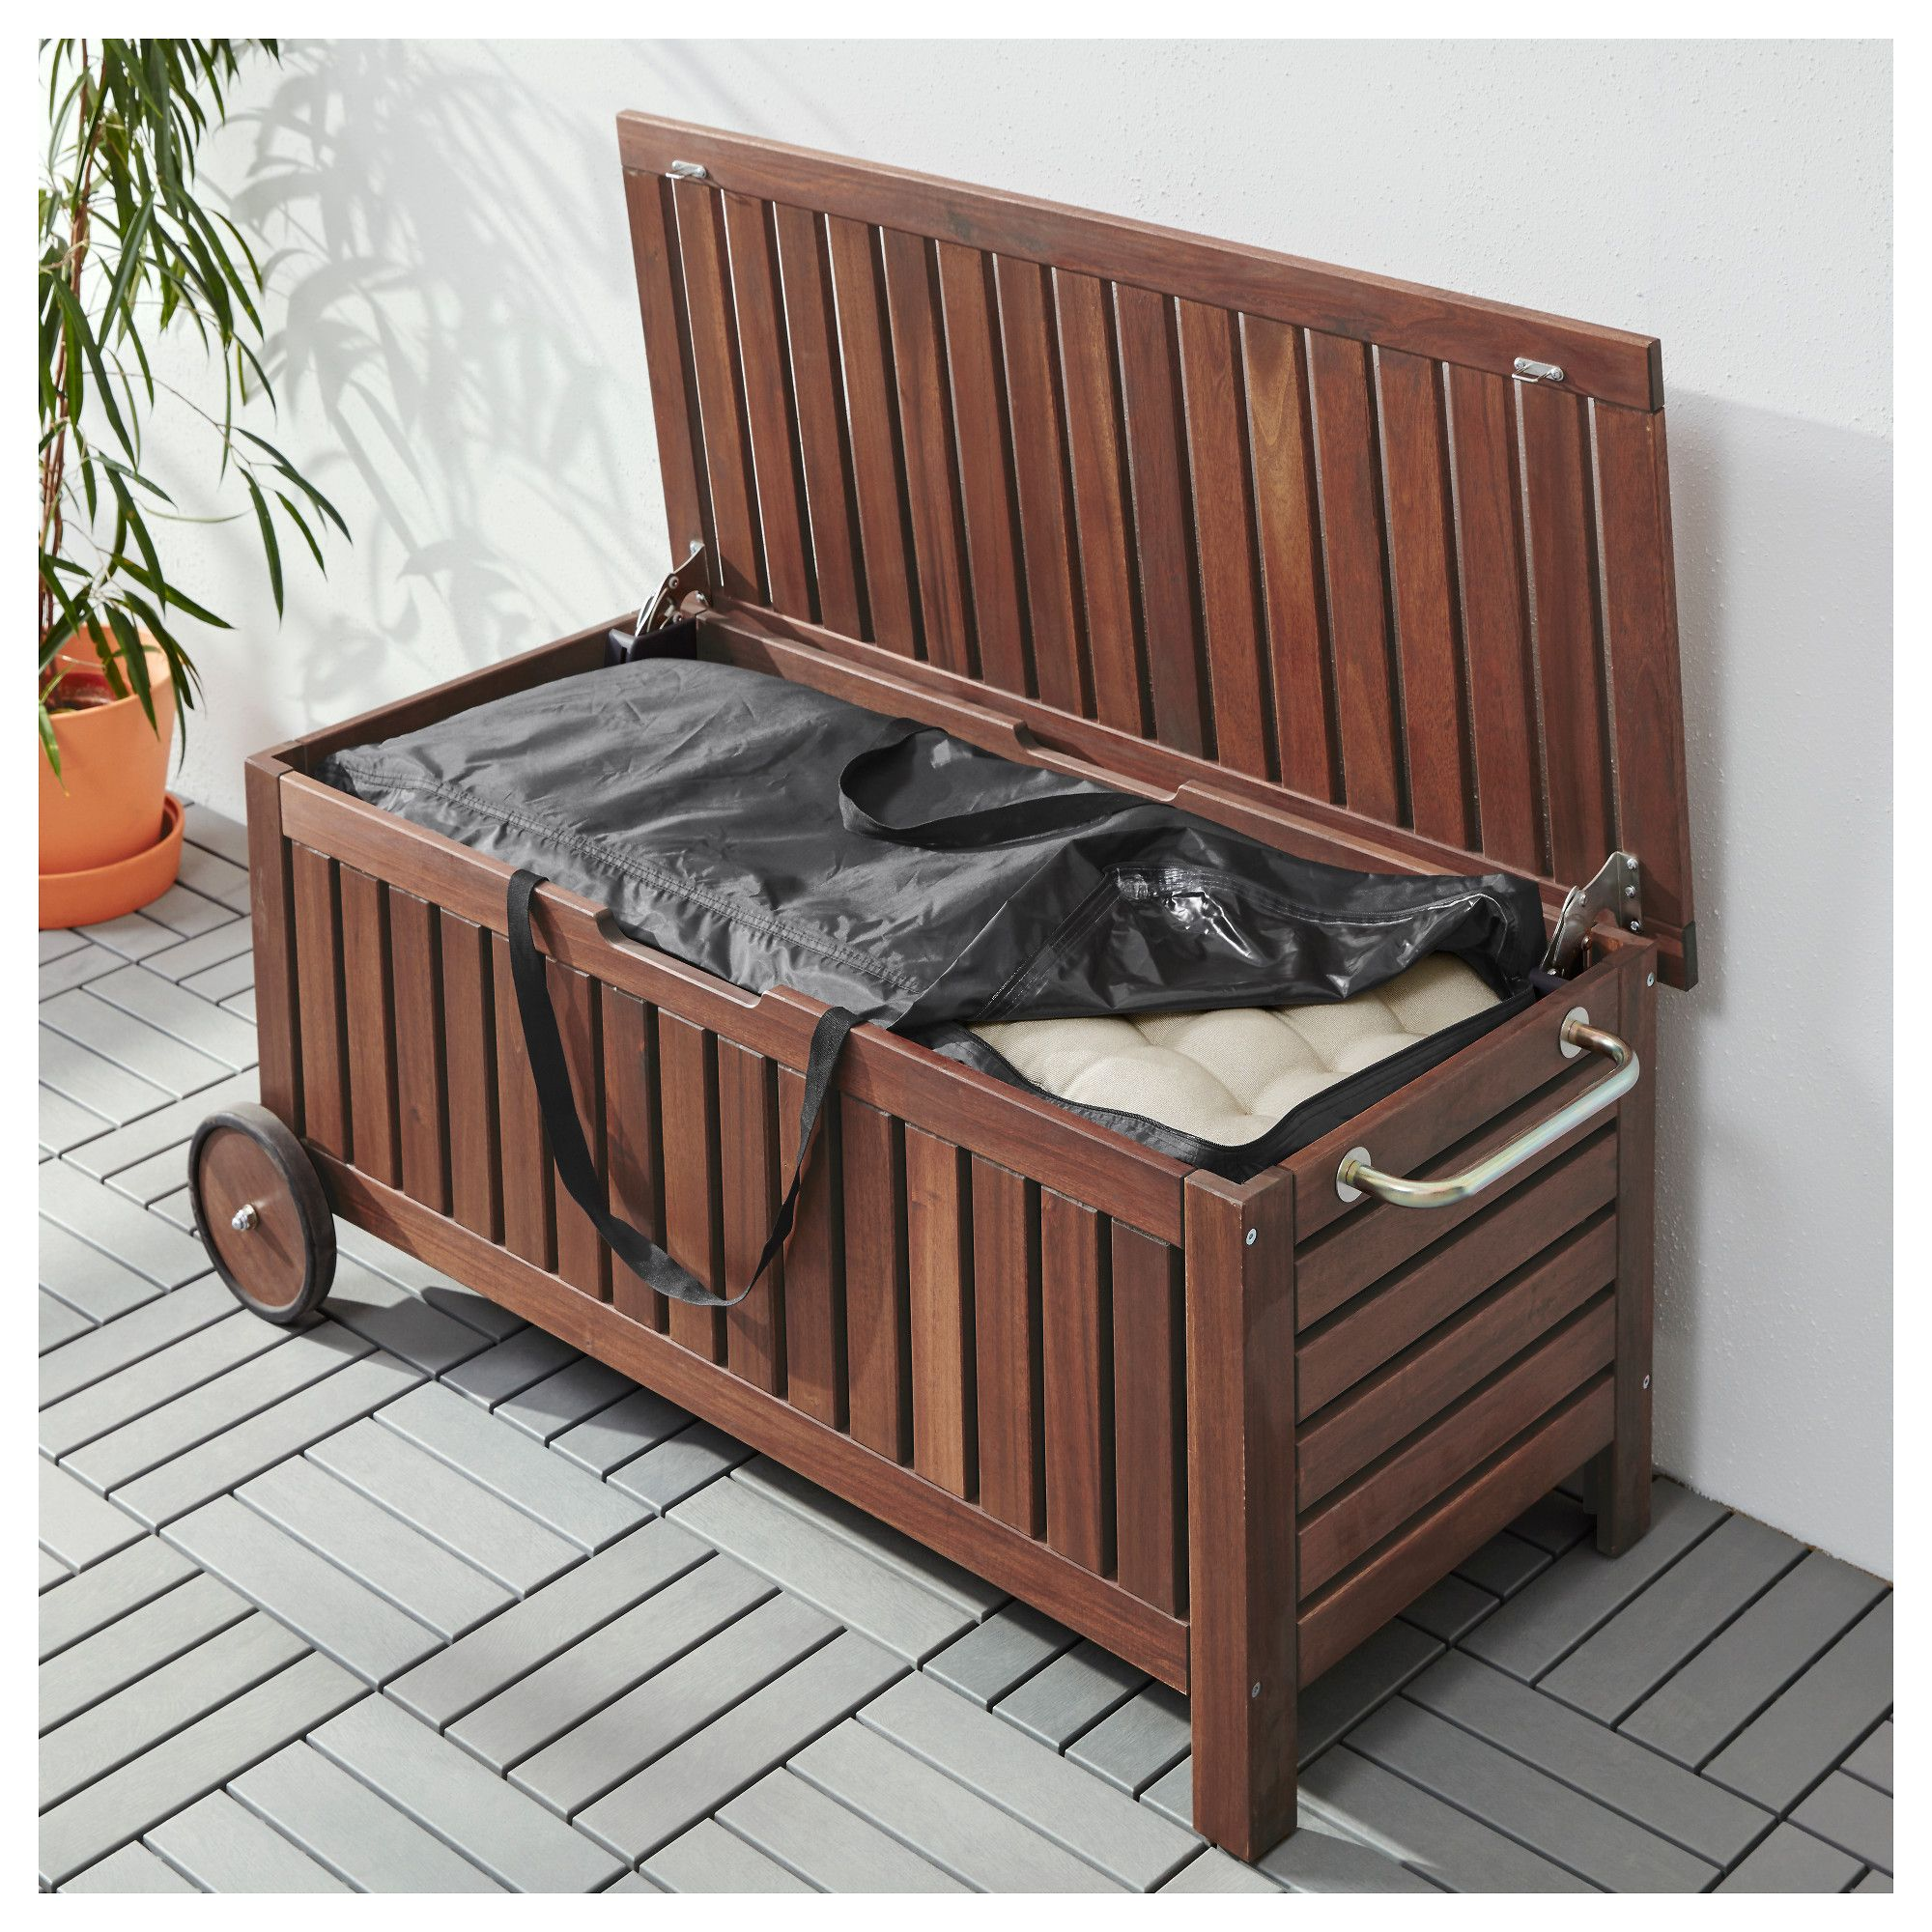 Balkonbank Ikea TosterÖ ÄpplarÖ Bench With Storage Bag Outdoor Brown Stained 128